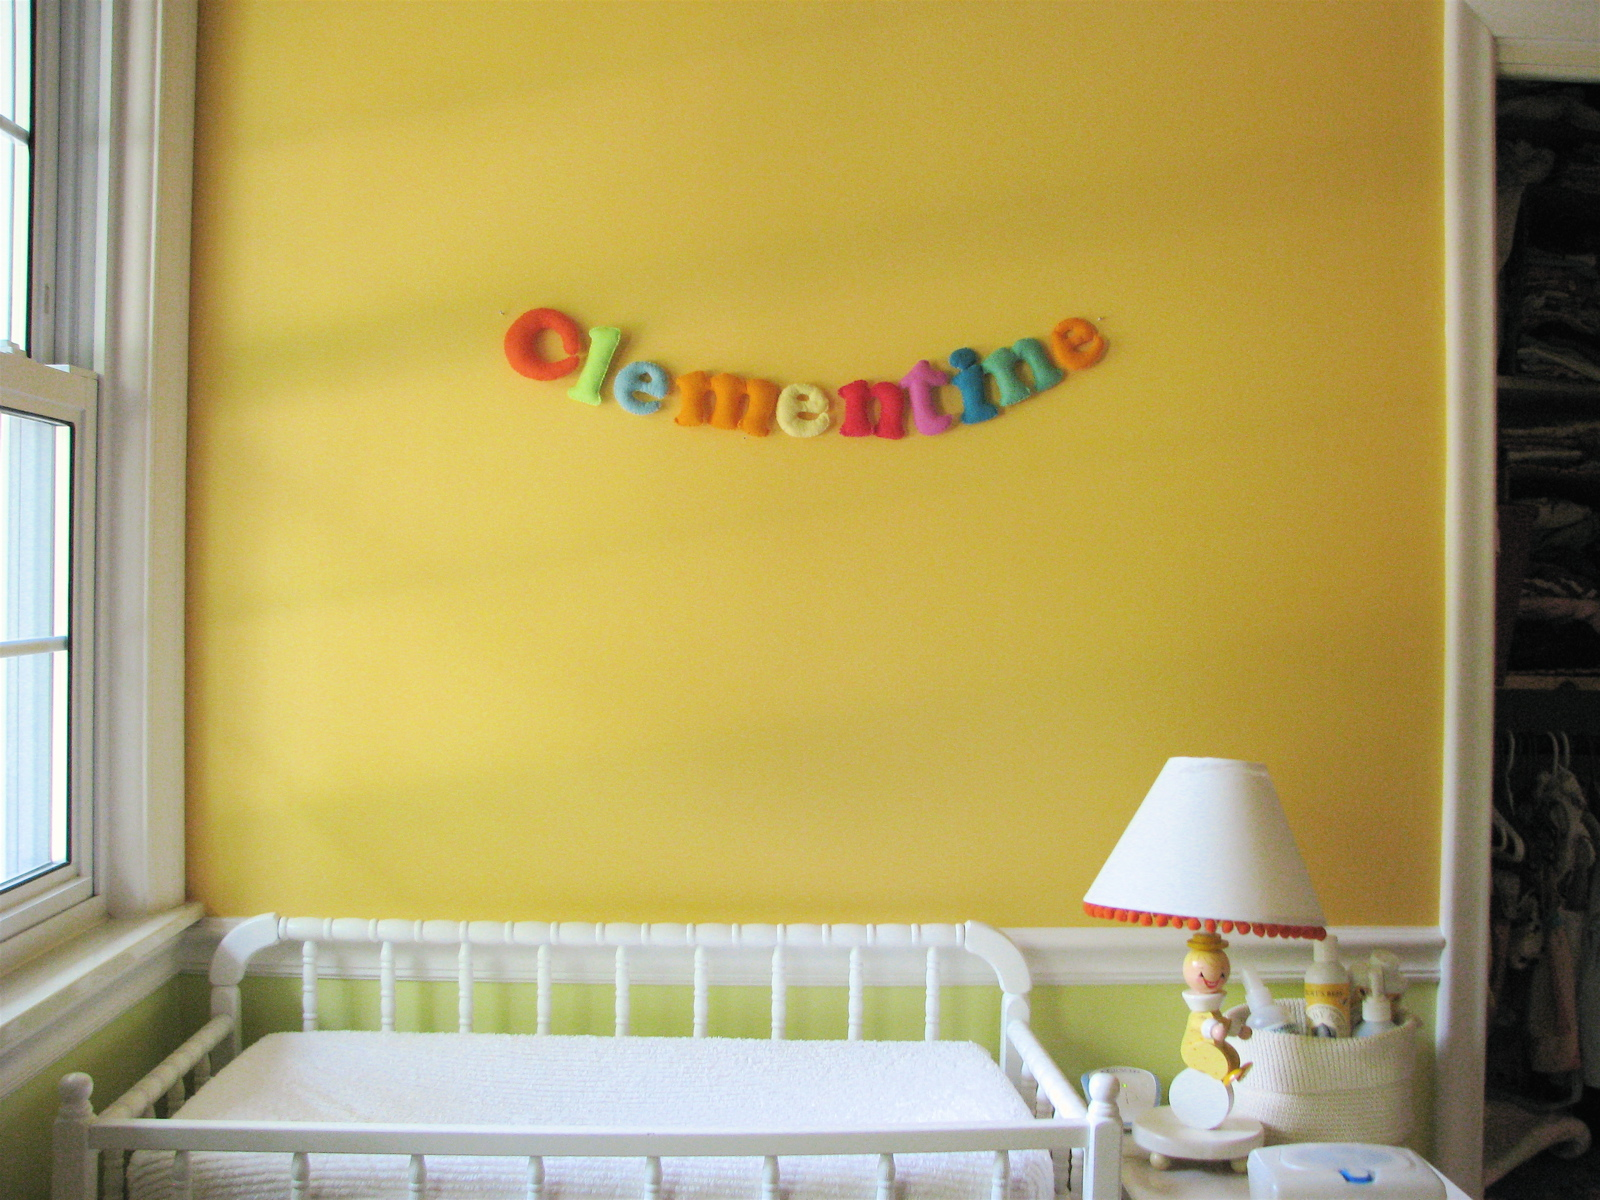 felt letters for clementine s room made by rae felt letters for clementine s room